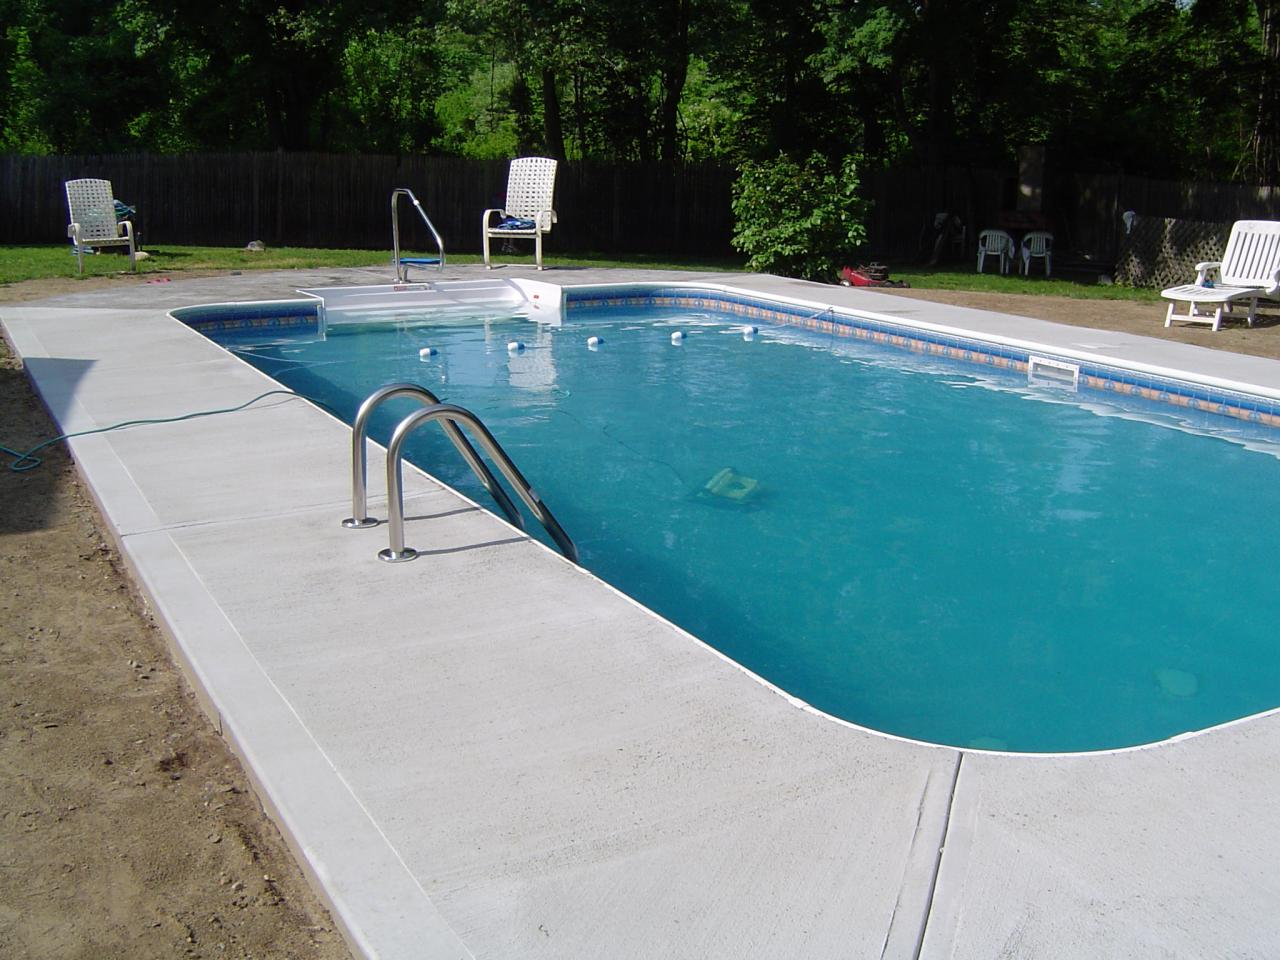 5 Reasons Why Concrete Pools Are The Best Choice For Your Home